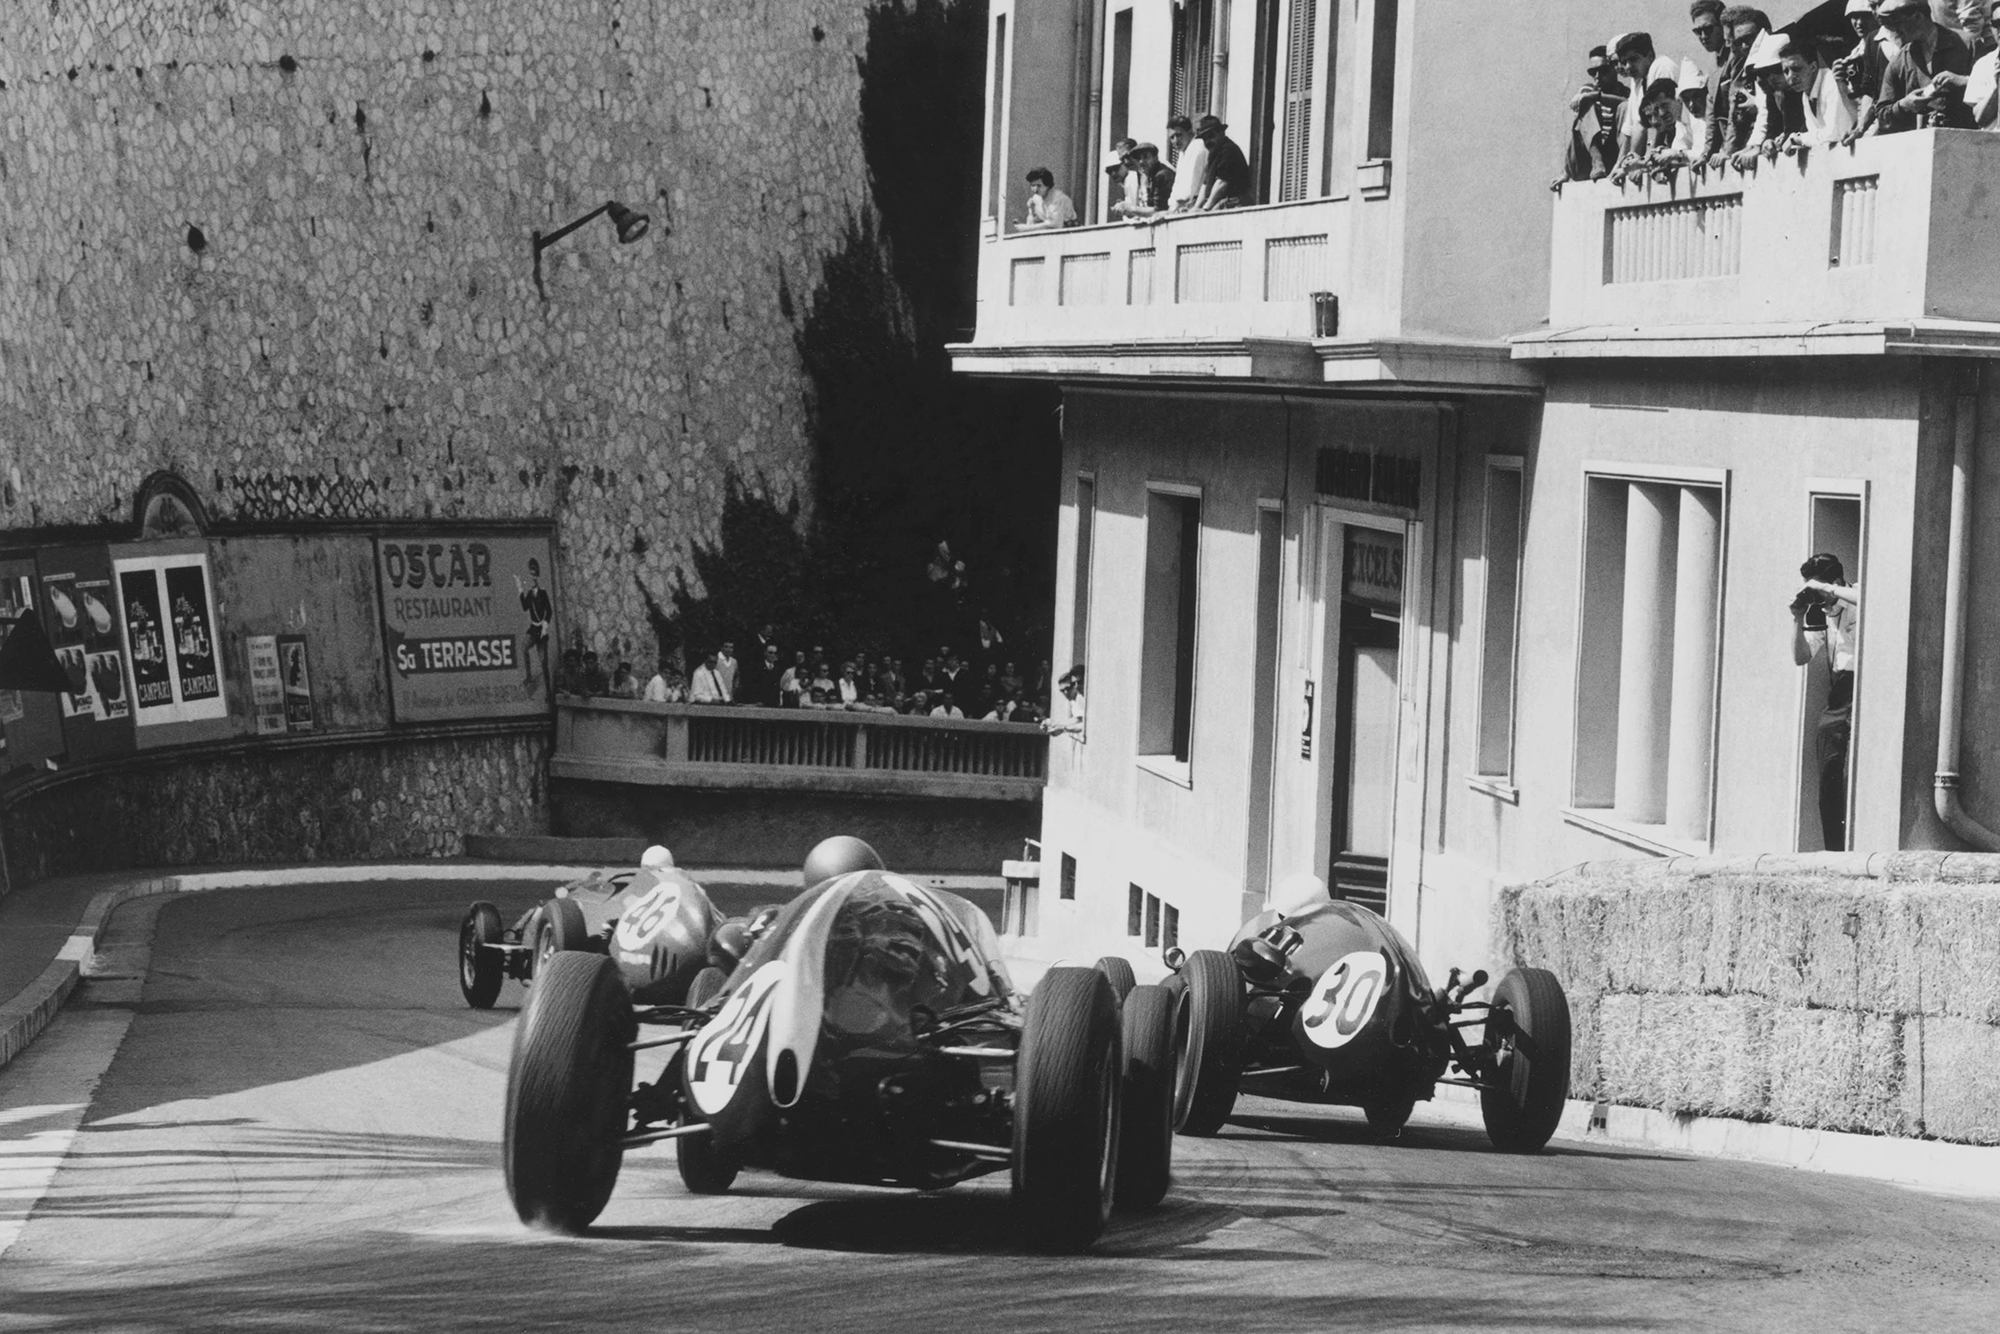 Jean Behra in a Ferrari Dino 246 leads Stirling Moss in his Cooper T51-Climax